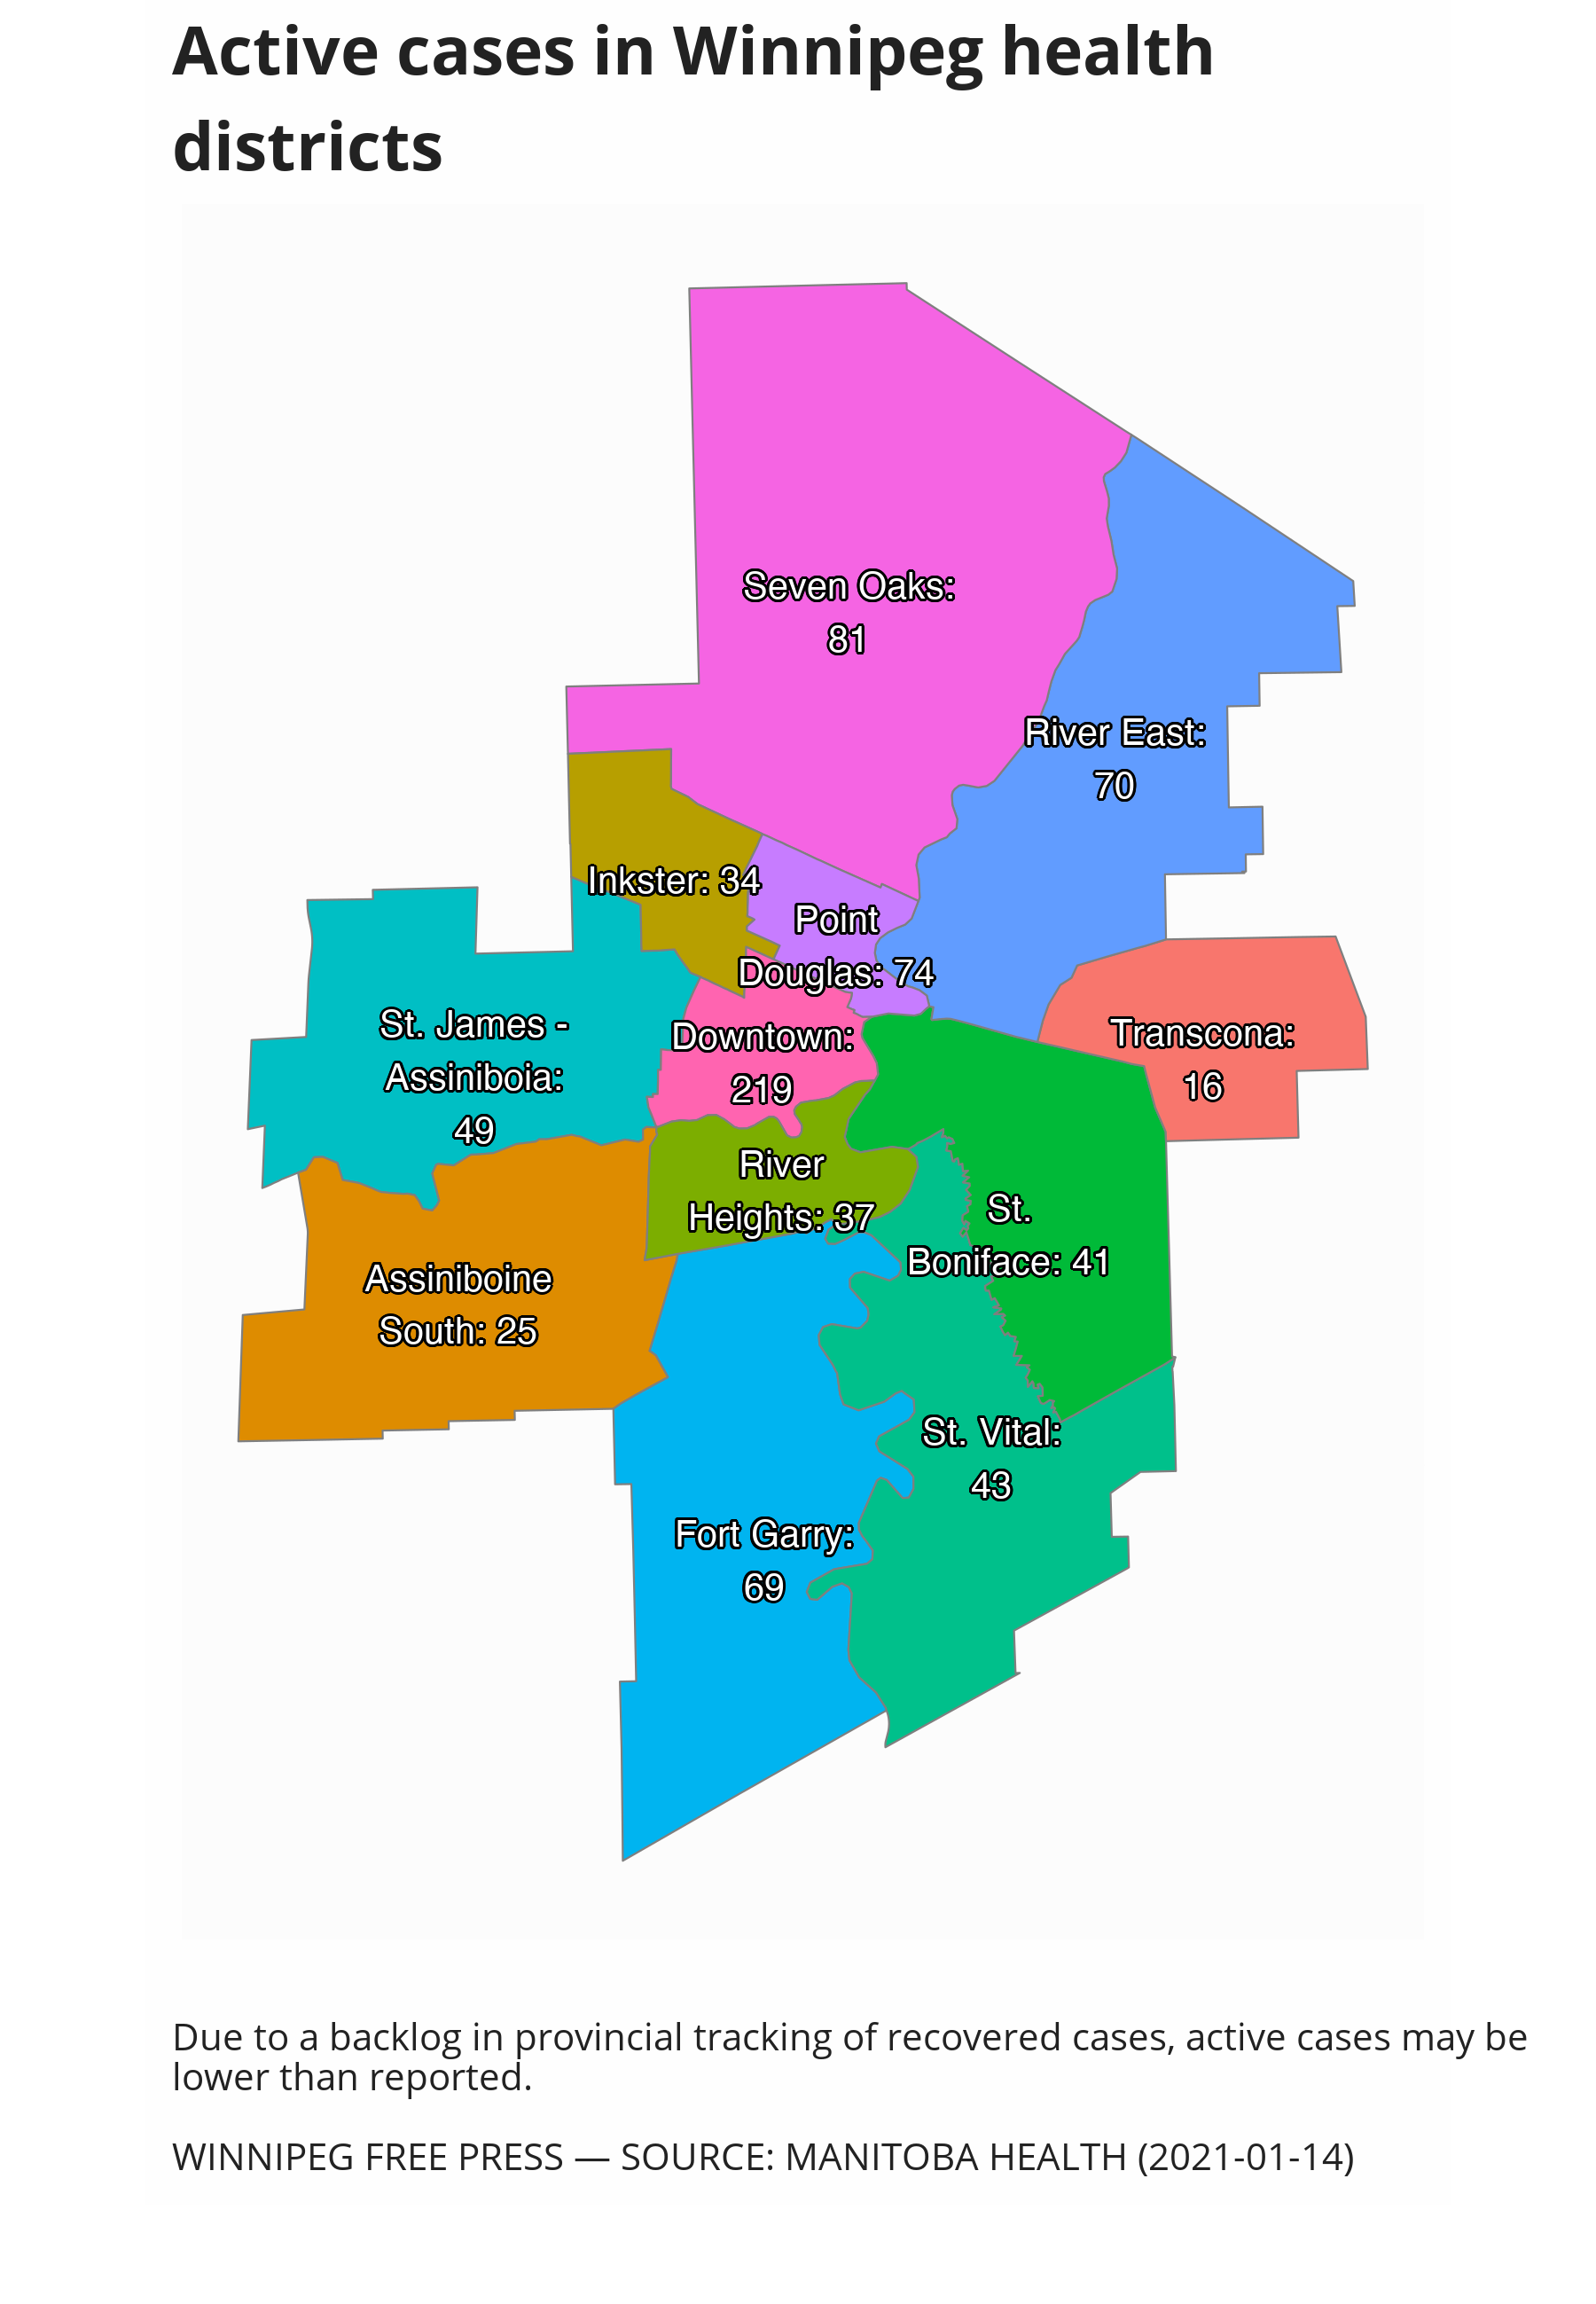 Map showing active cases of COVID-19 by Winnipeg health districts